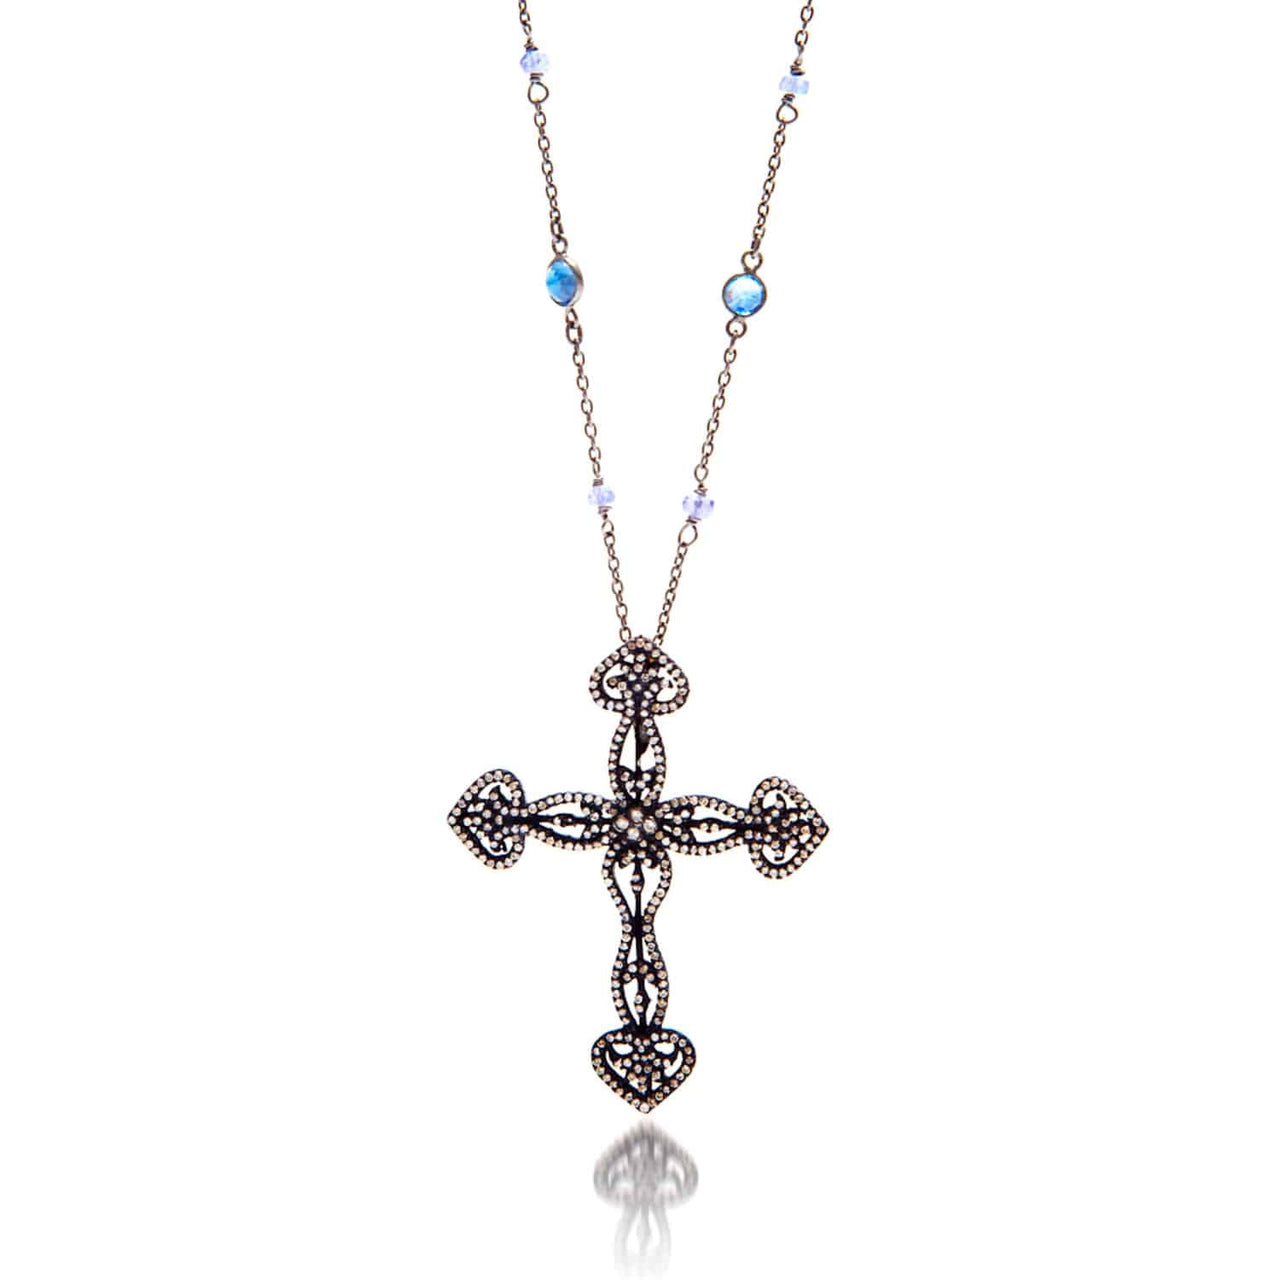 Jaipur Atelier Black & Blue Tanzanite & Diamond Cross